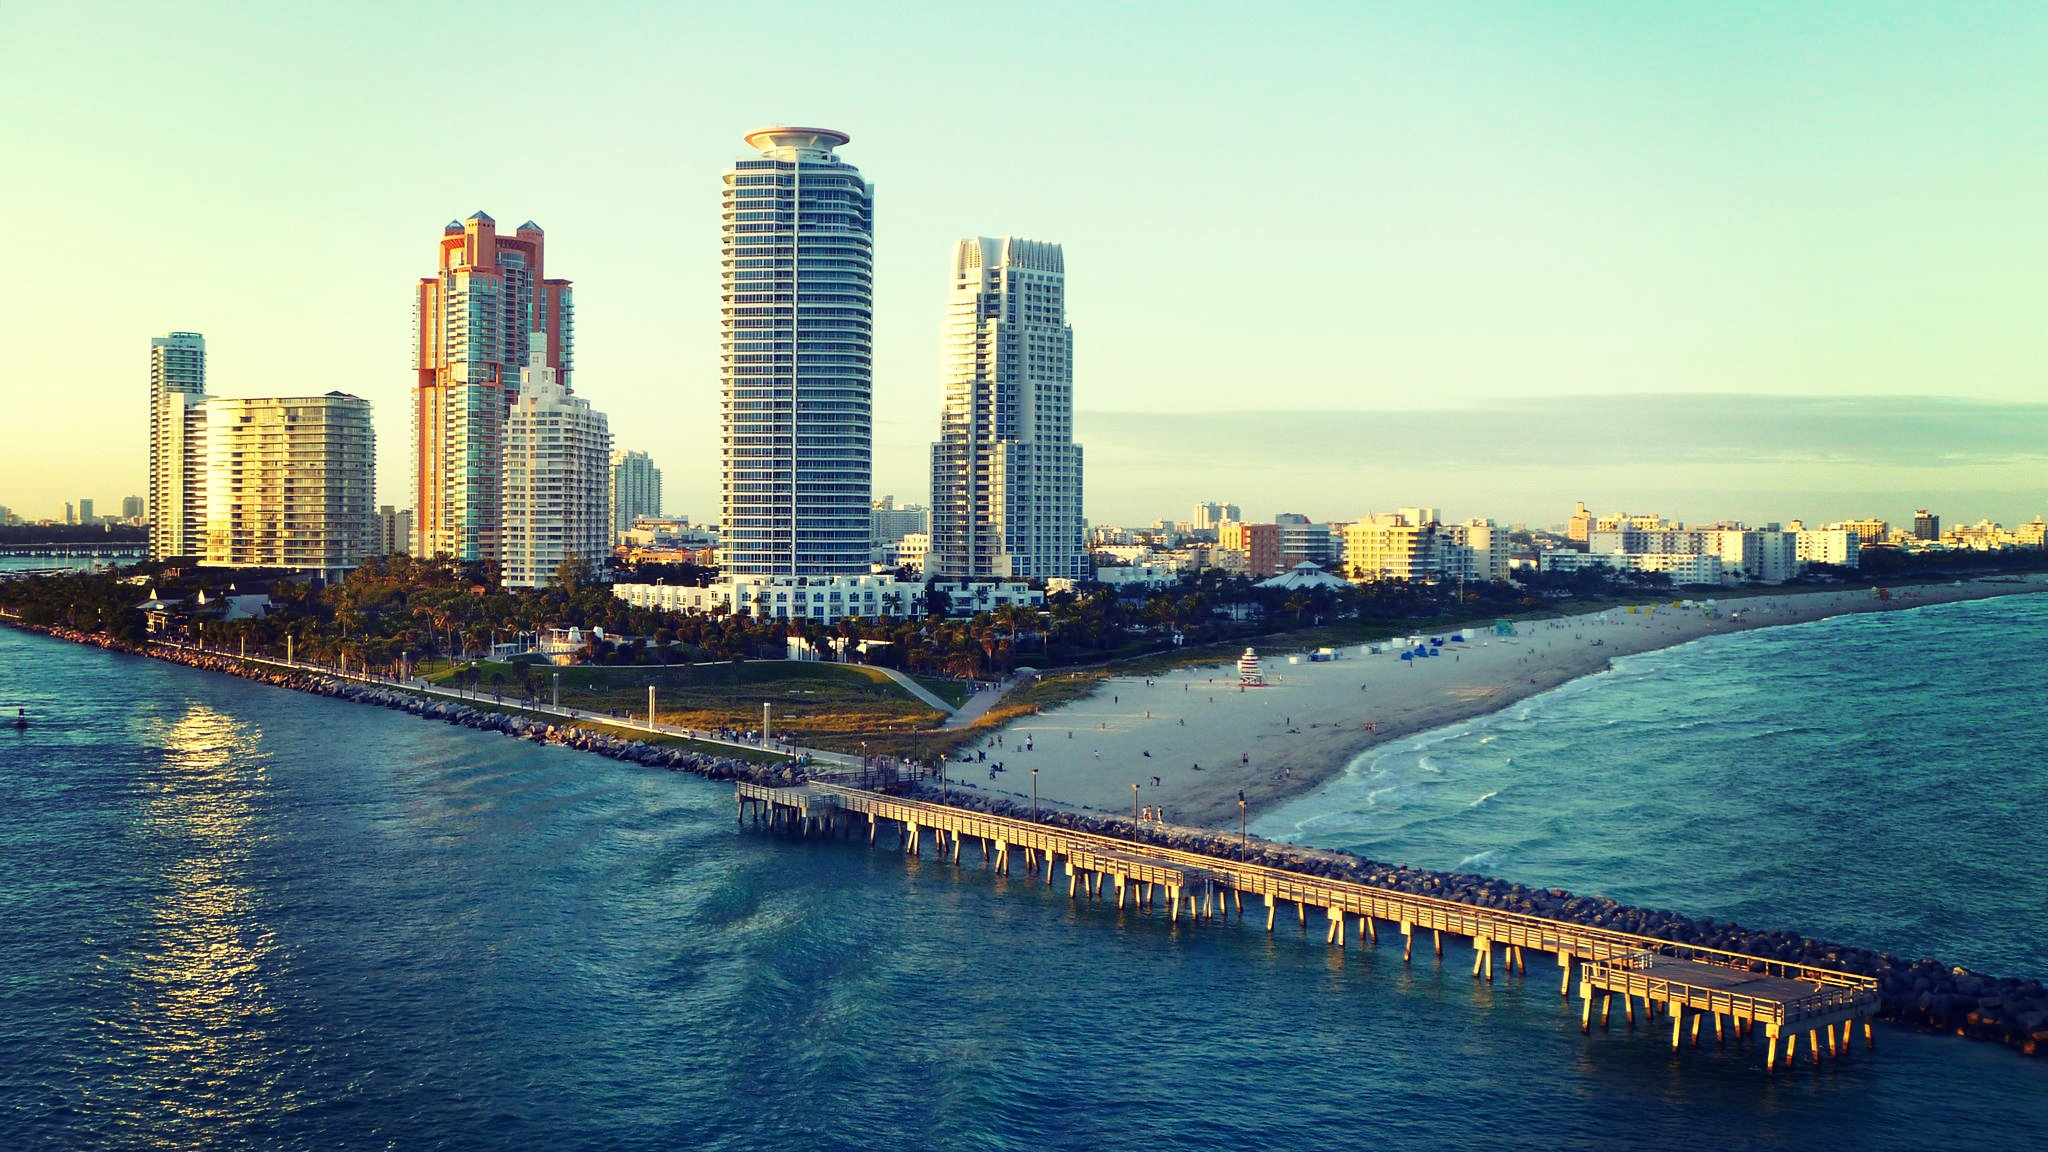 Miami fl florida miami miami beach ocean beach wallpapers 2048x1152